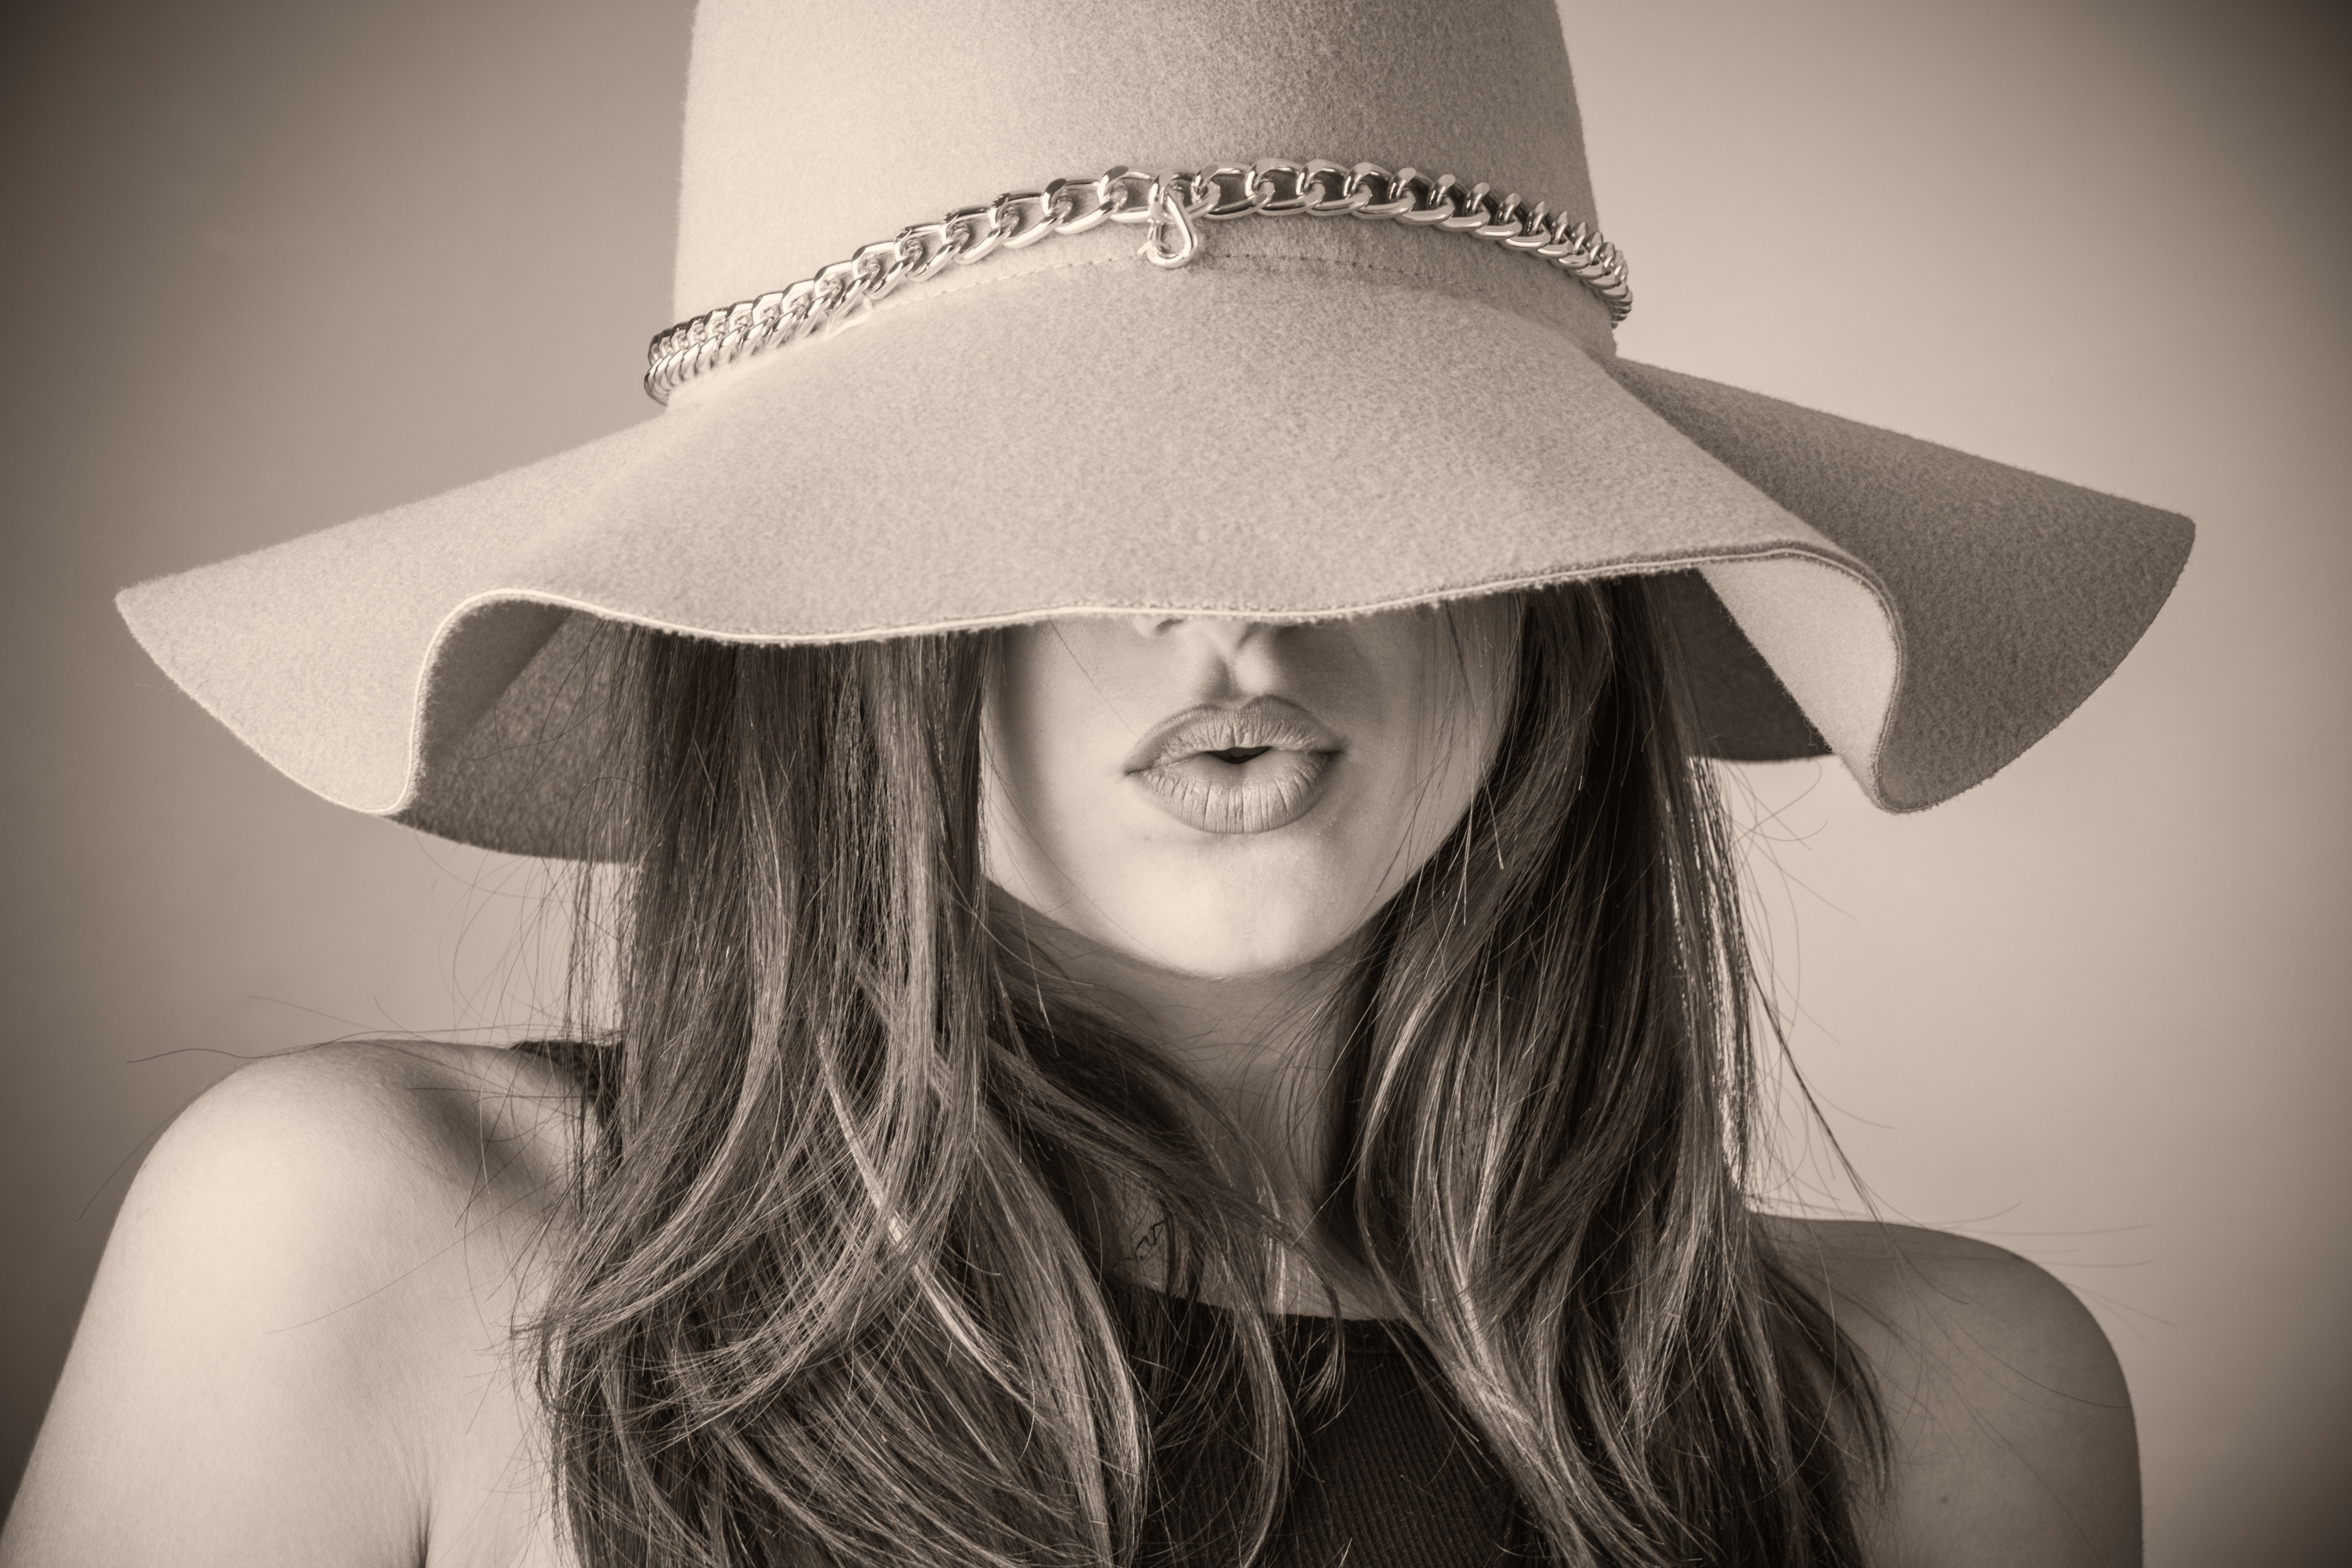 woman's face covered by a hat